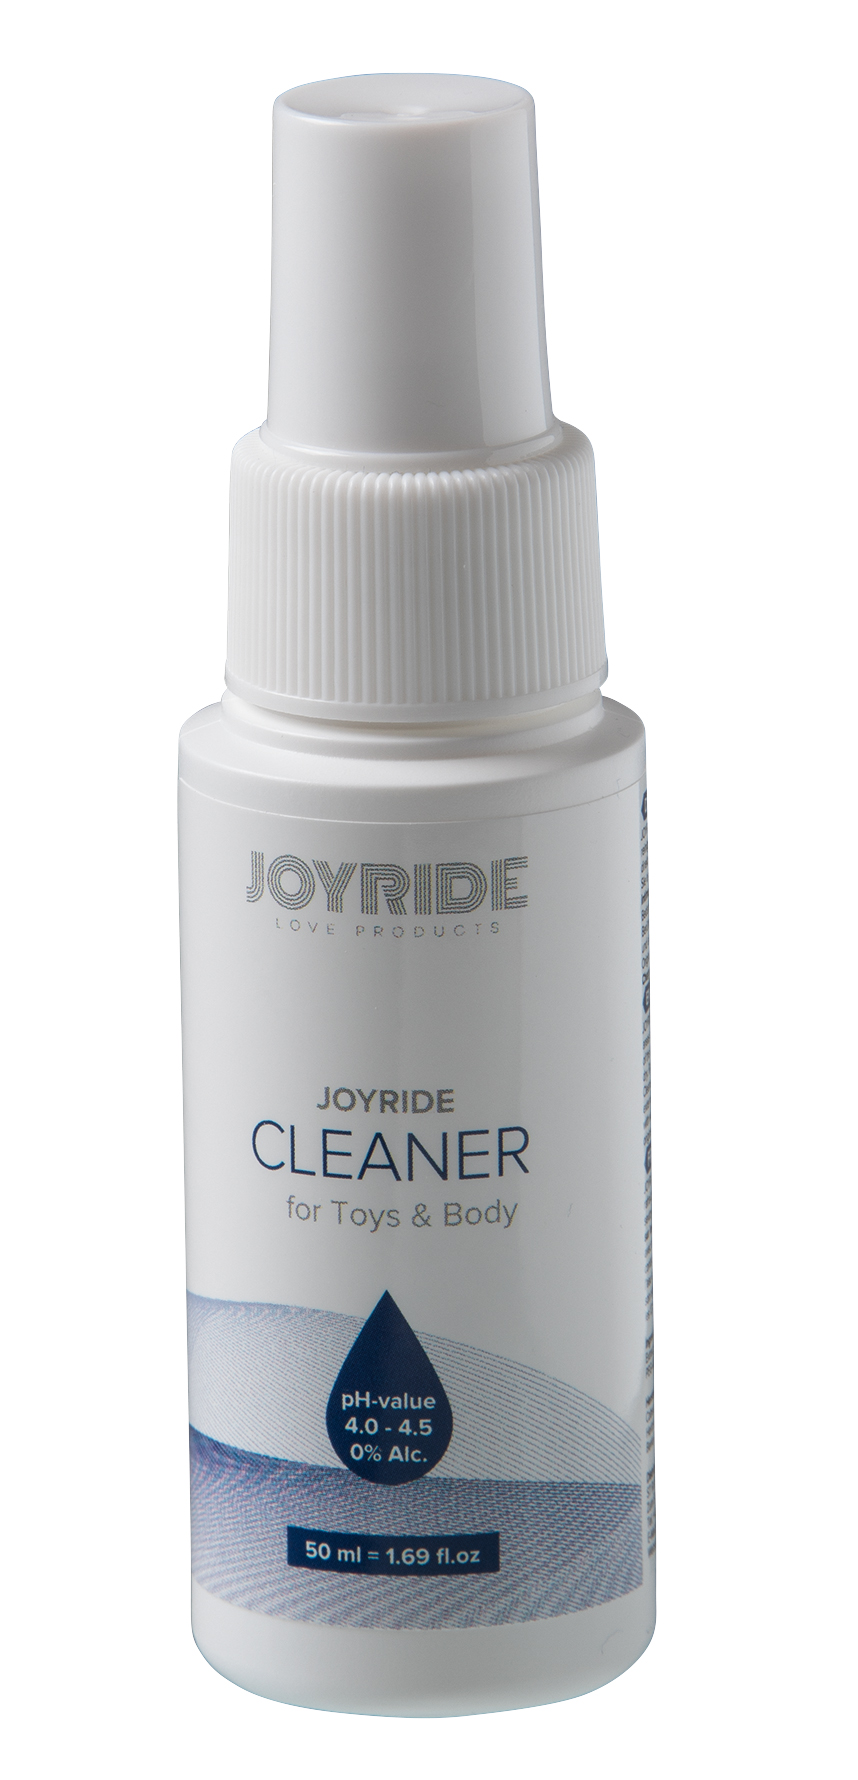 JOYRIDE Cleaner for Toys & Body